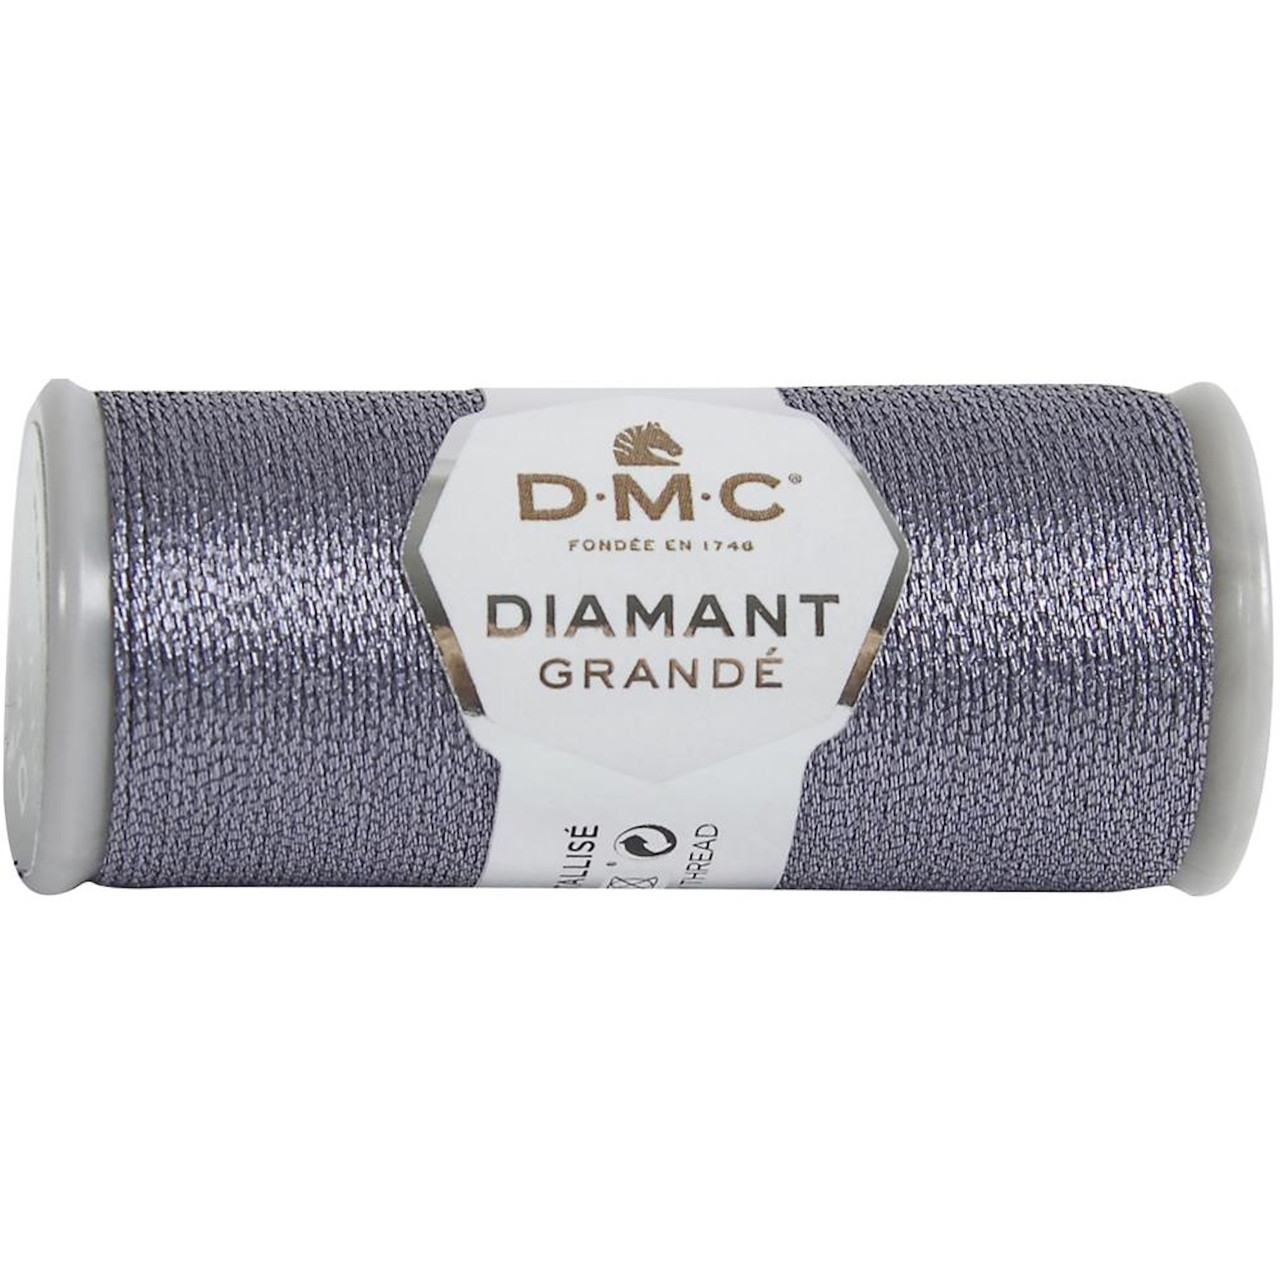 DMC - 21.8 Yard Spool of Anthracite Grey Diamant Grande Metallic Thread #G317